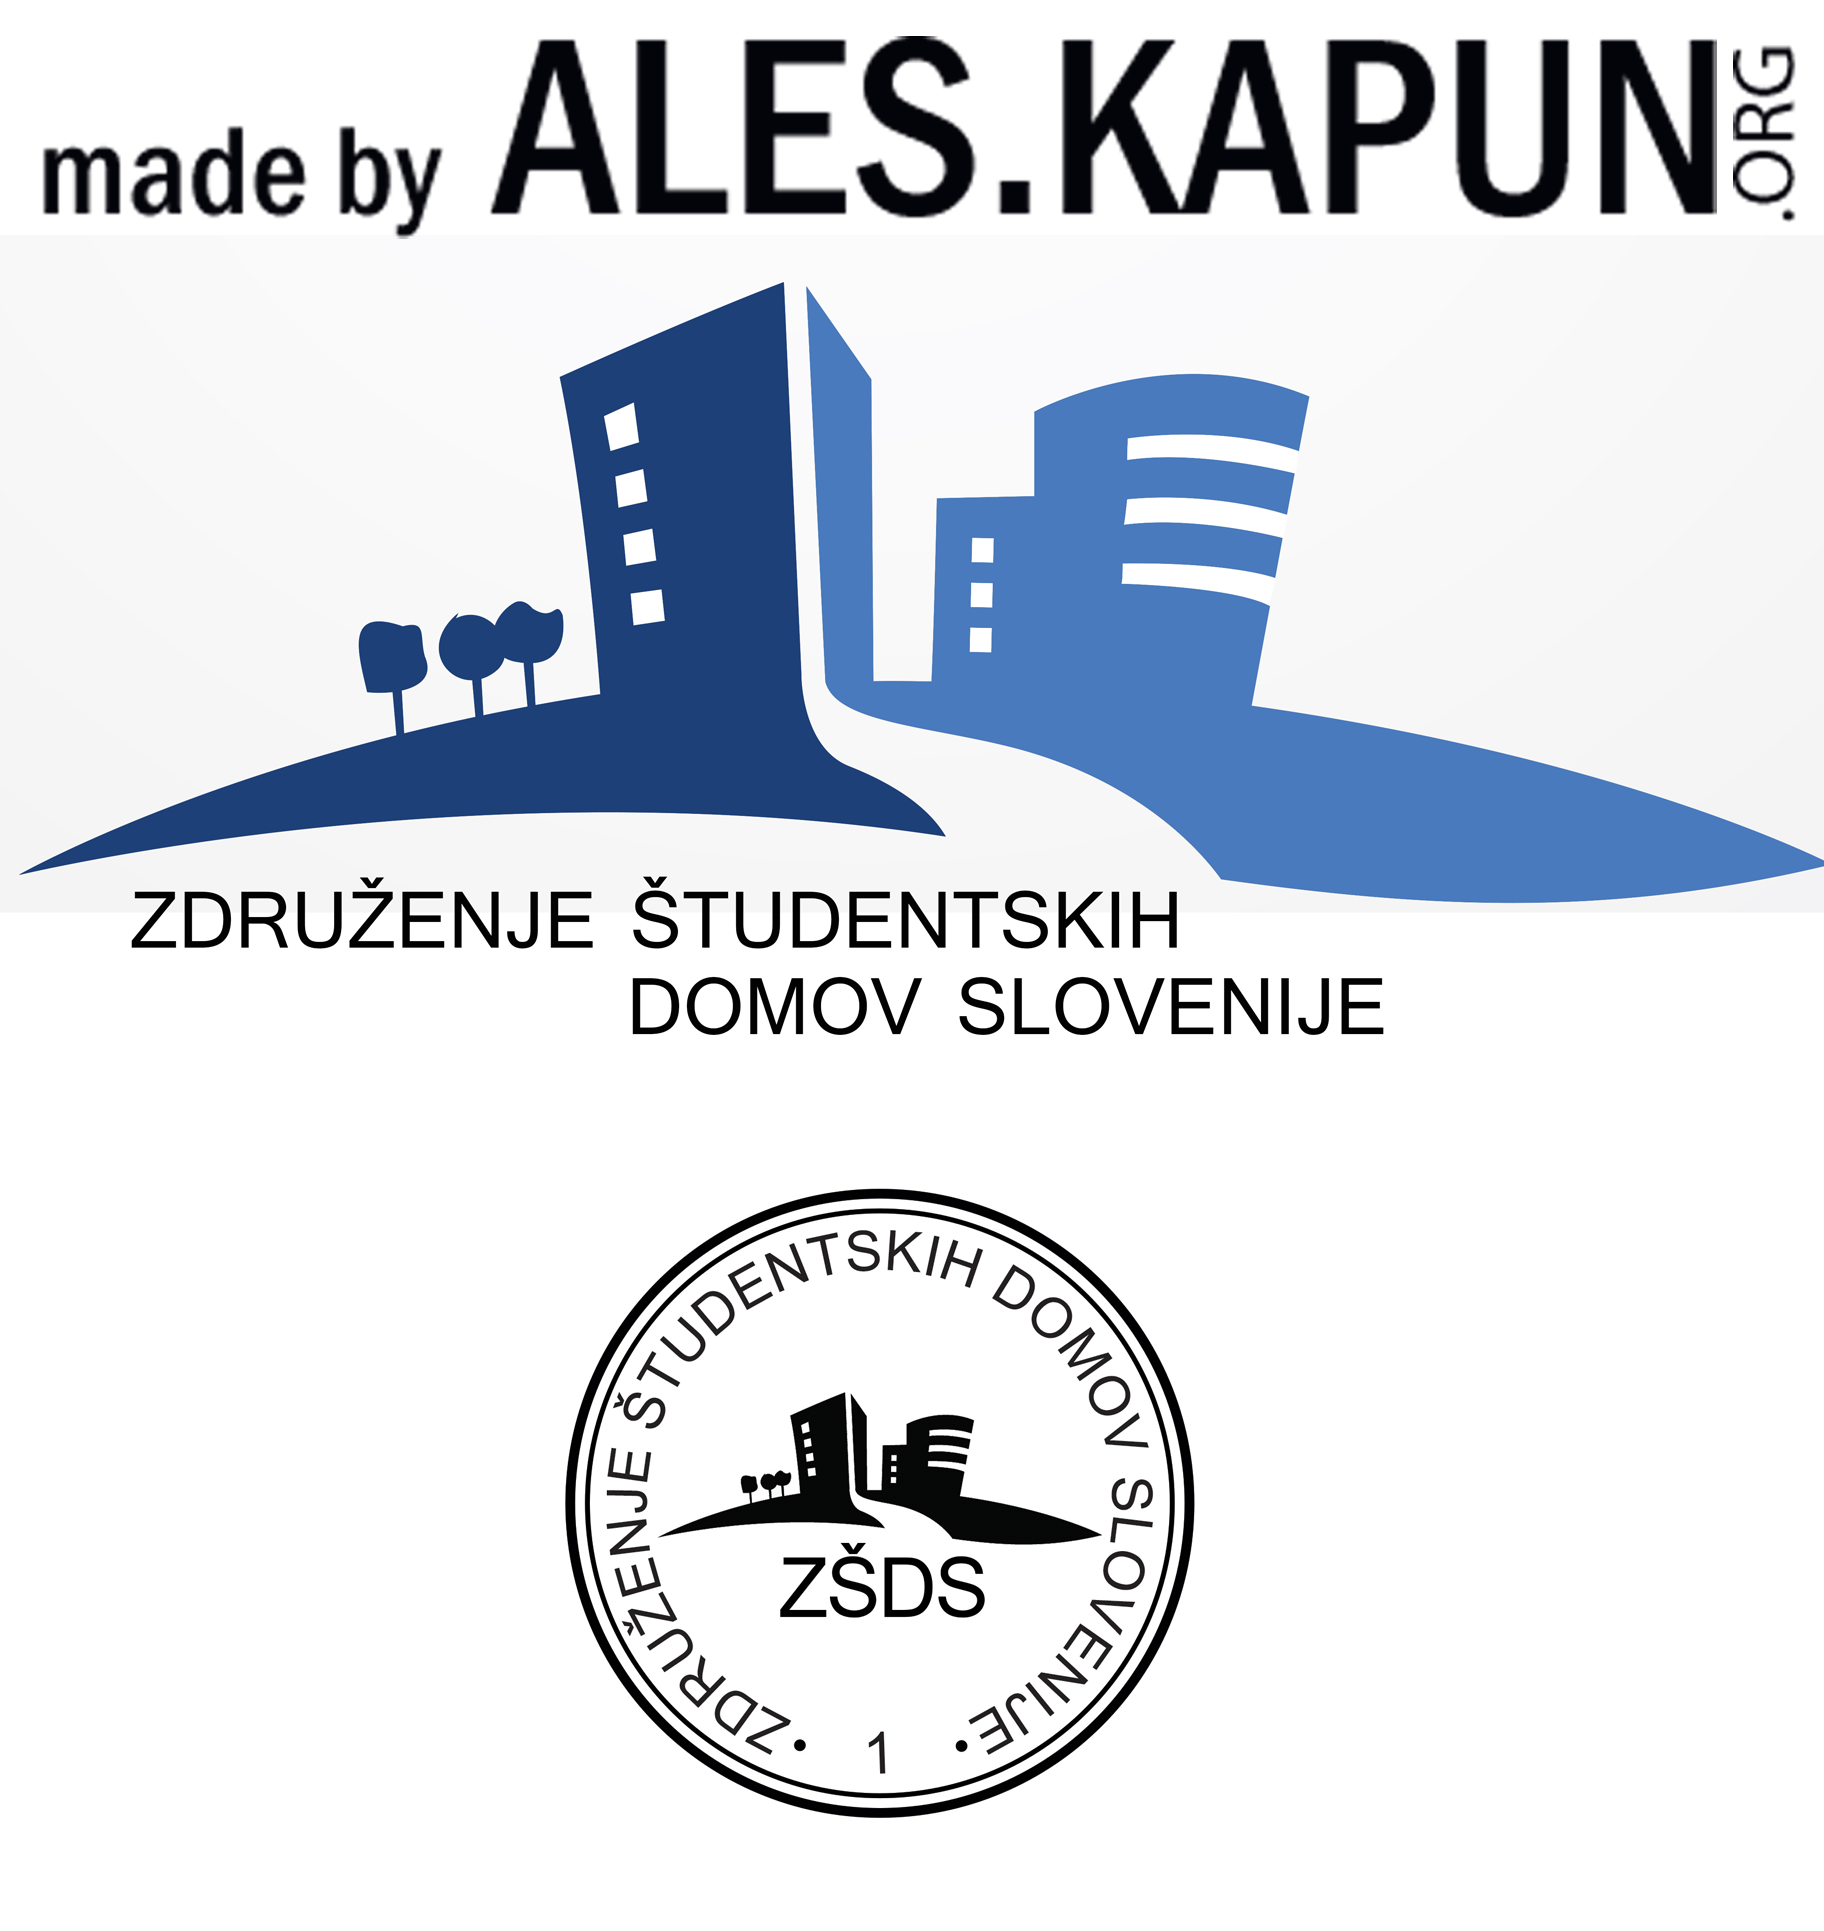 Logo and stamp of organization - Slovenija